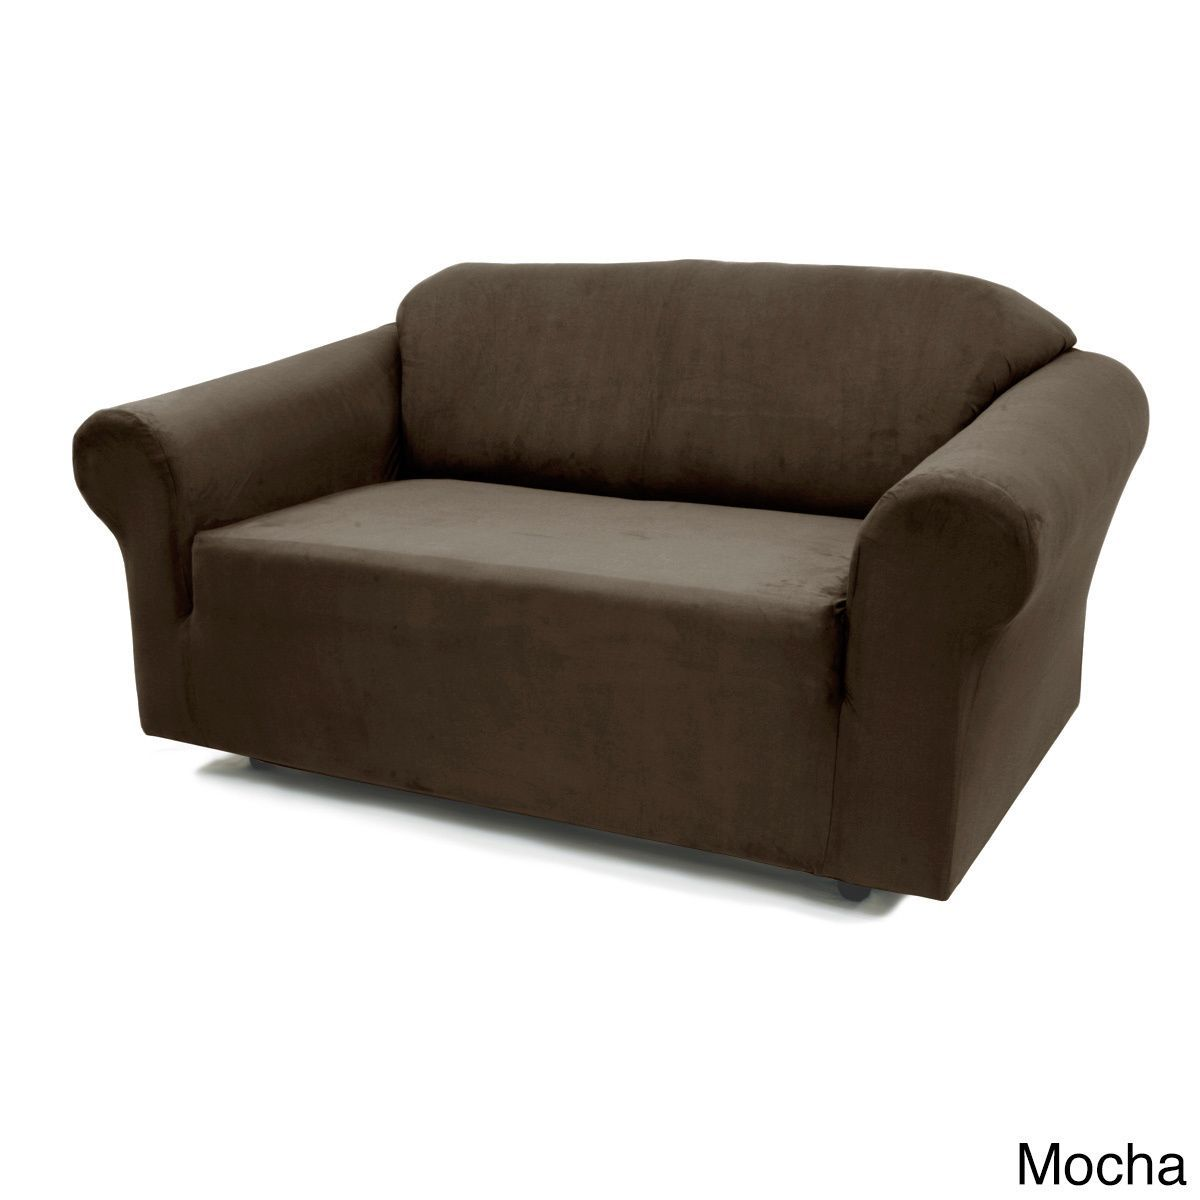 Stretch Suede Sofa Slipcover Mocha Brown Solid